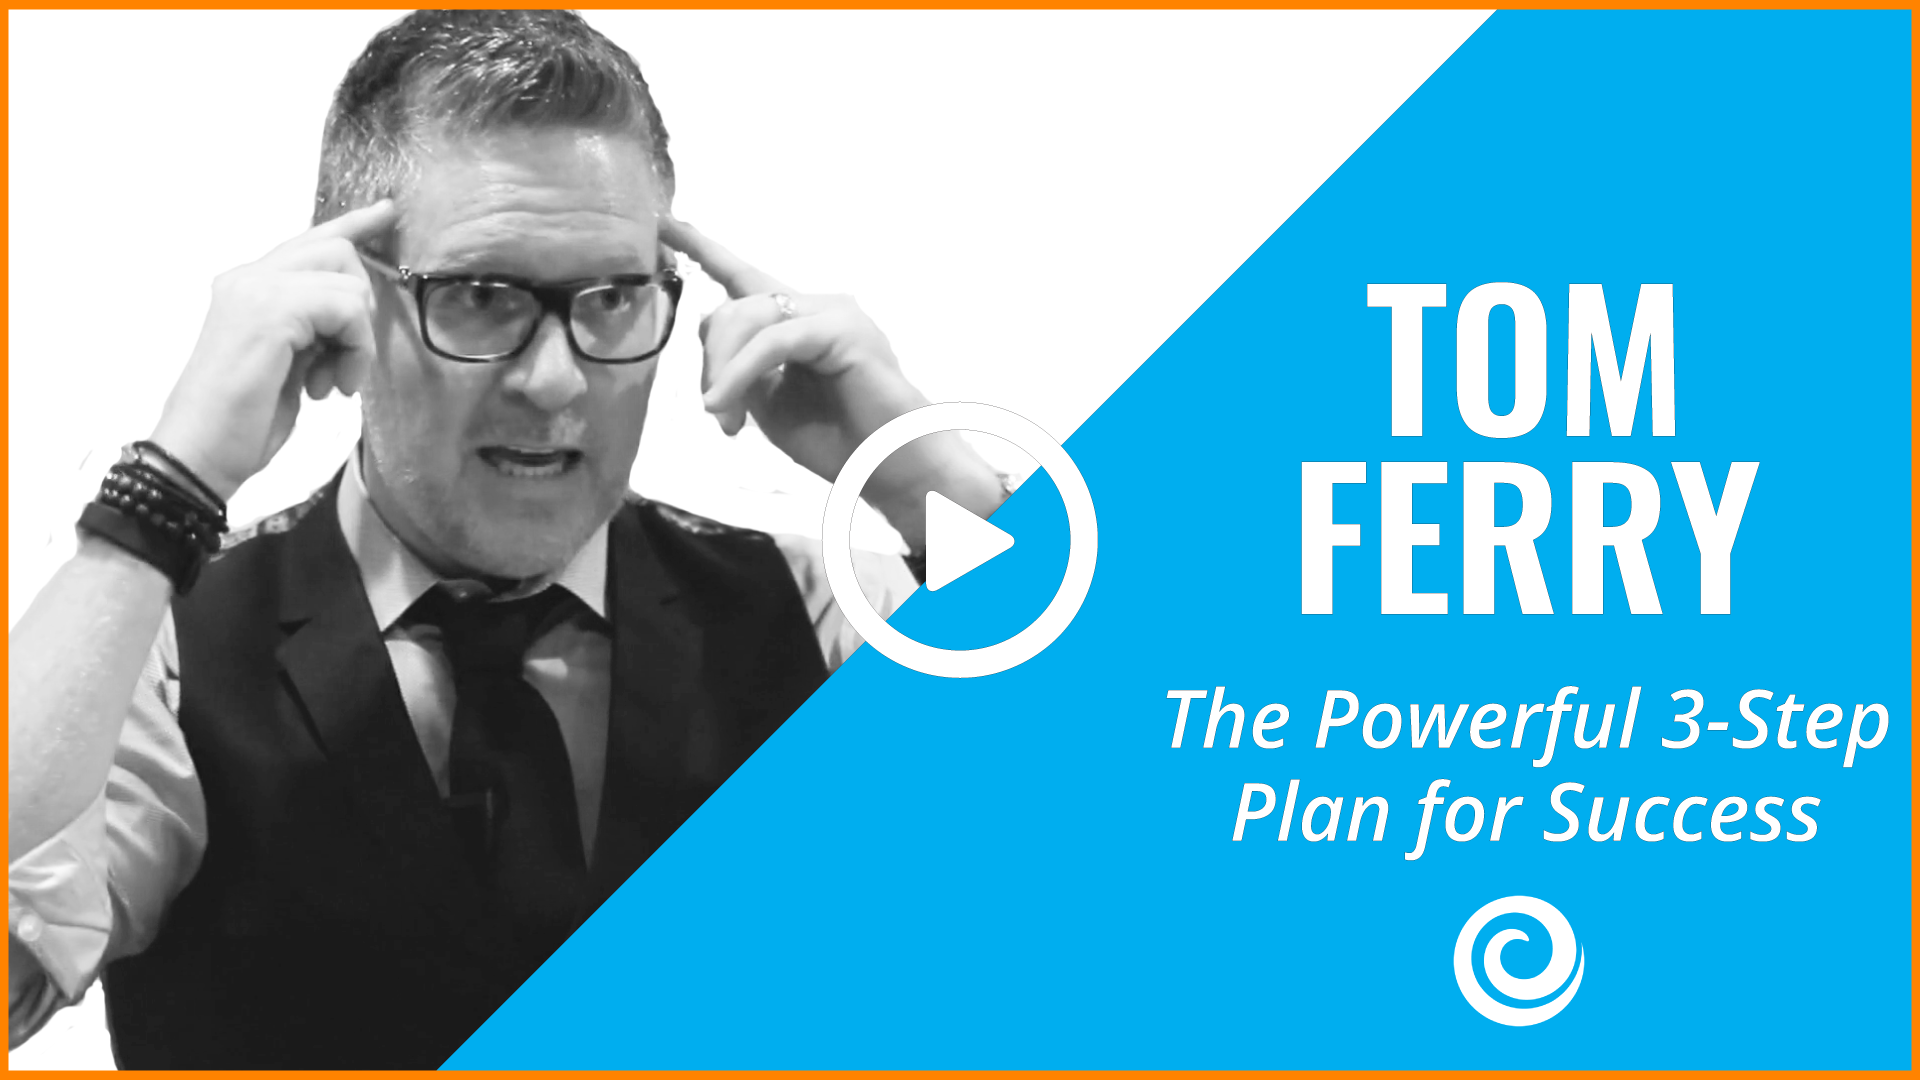 Tom Ferry's Powerful 3-Step Plan for Success - Keeping